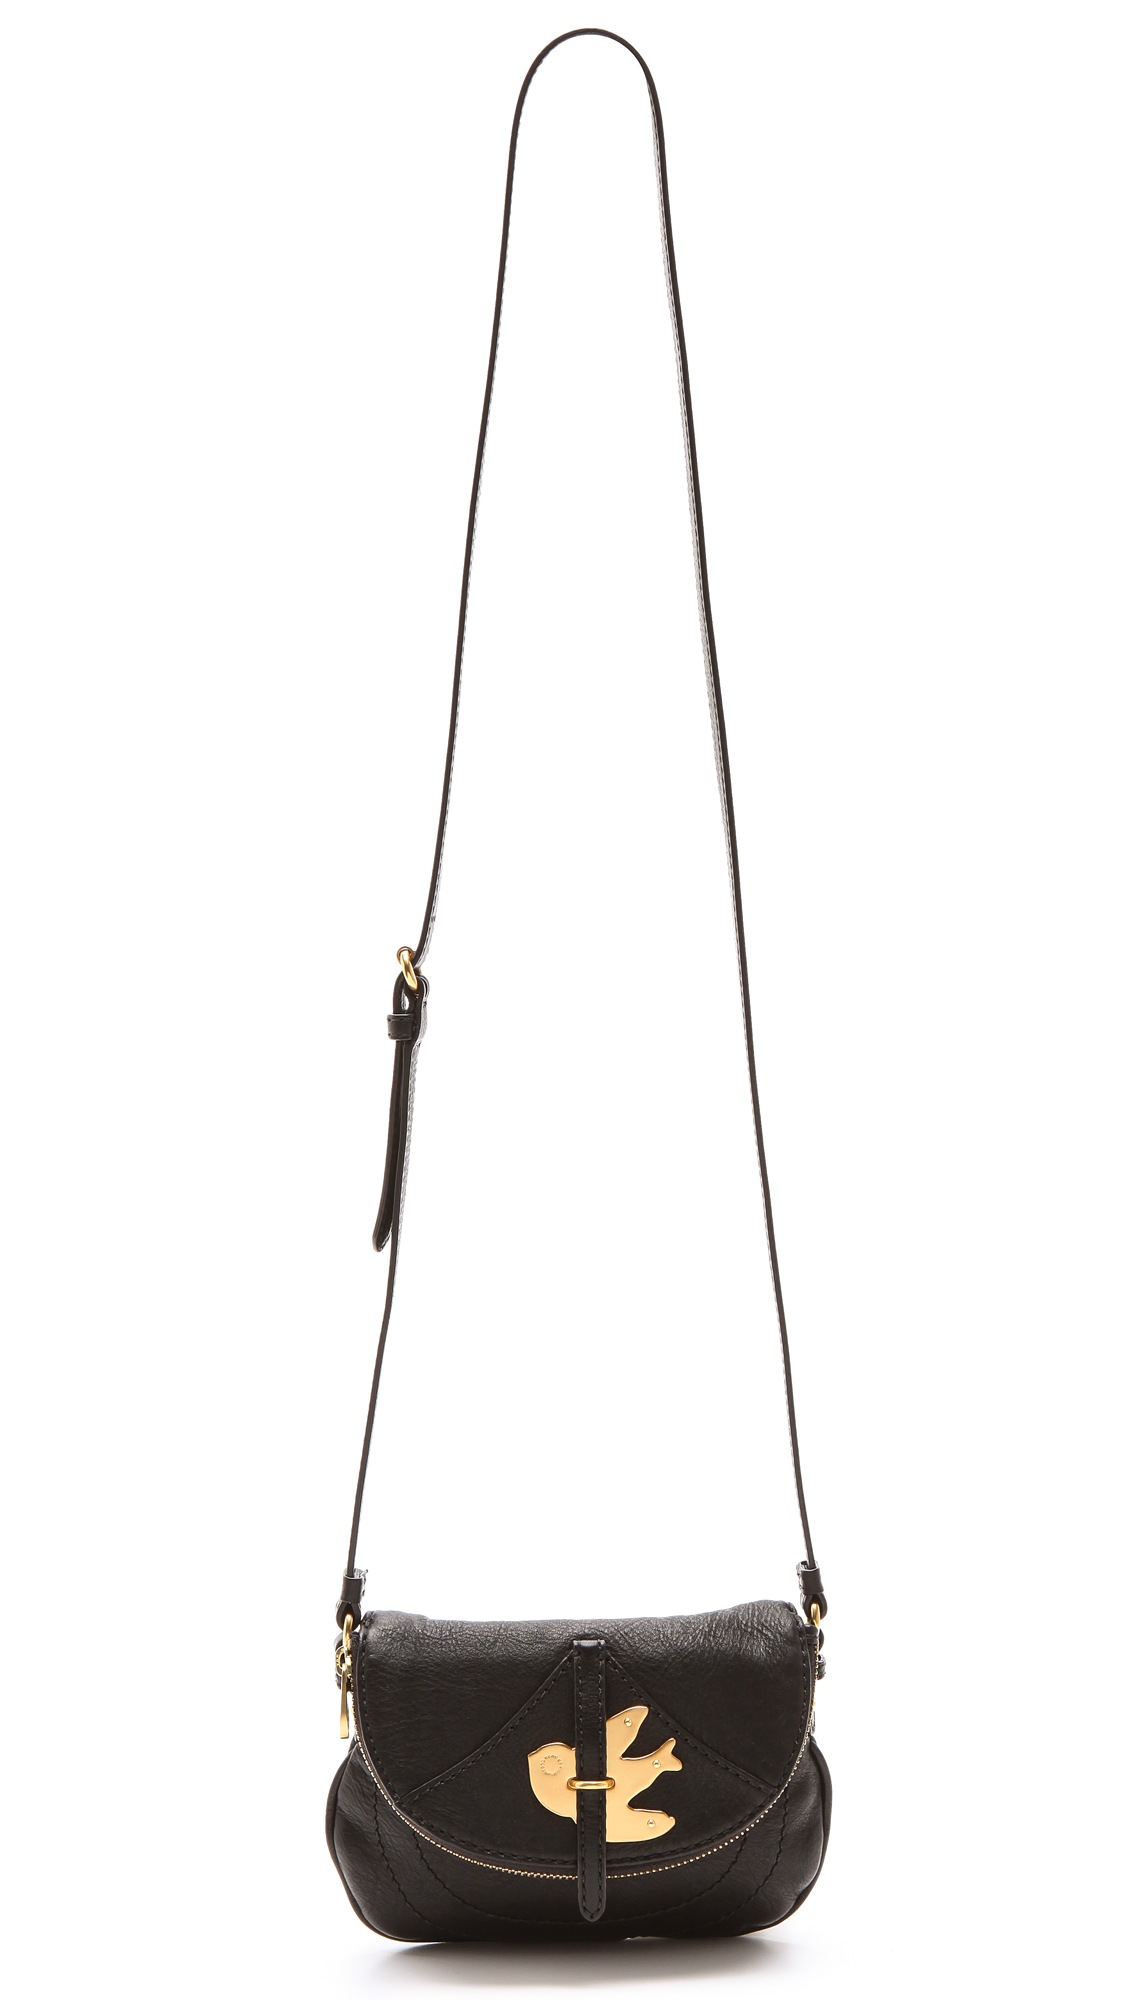 Apr 13, · I am trying to find a Marc by Marc Jacobs Petal to the Metal Natasha bag in black (the one that is a crossbody about 12 inches wide). Anyone know.